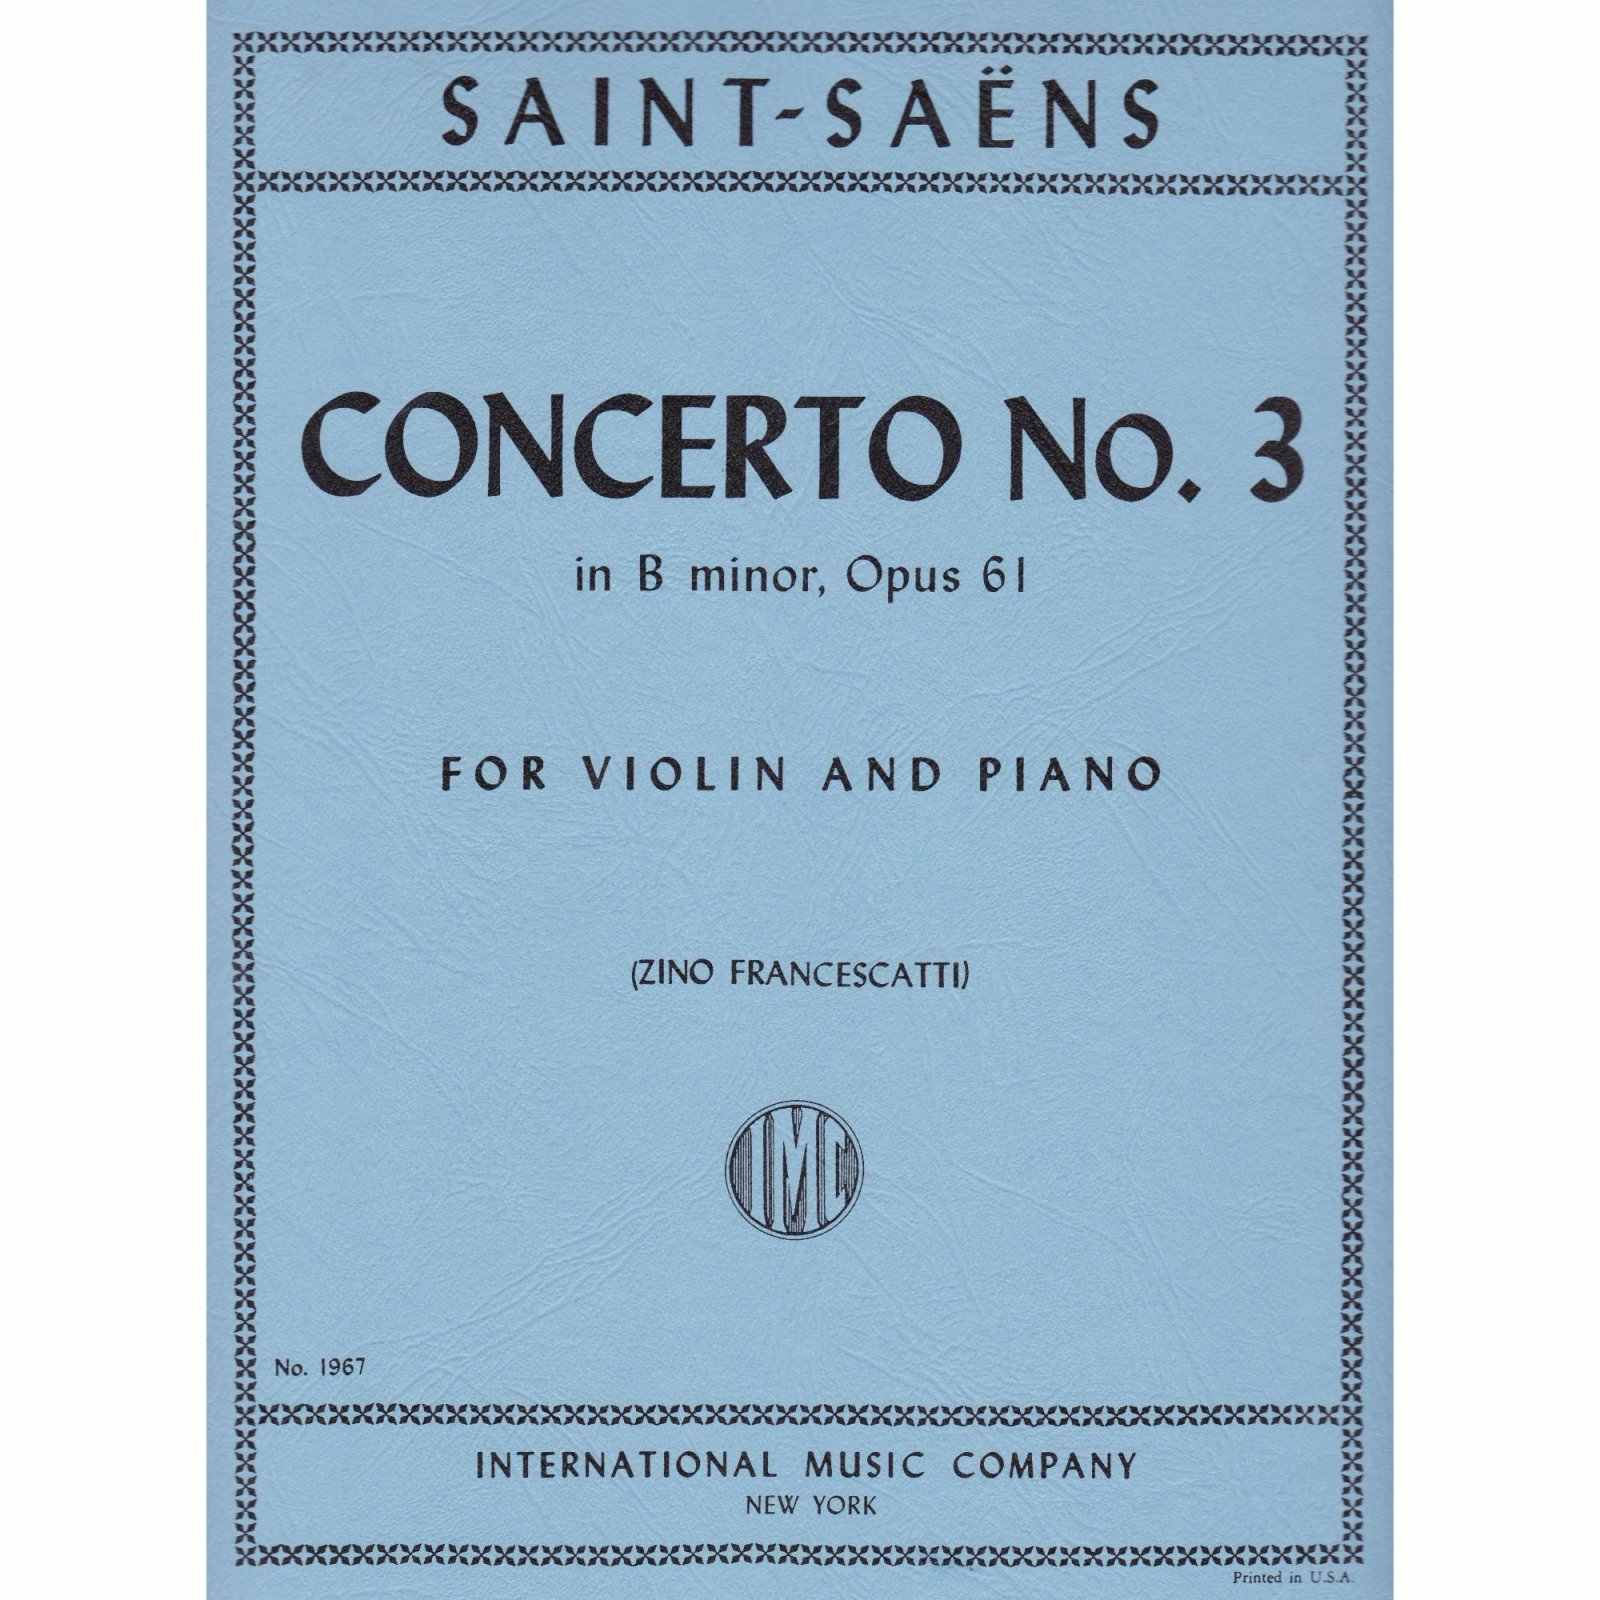 Saint-Saens: Concerto No.3 In B minor Op. 61 Ed. Francescatti